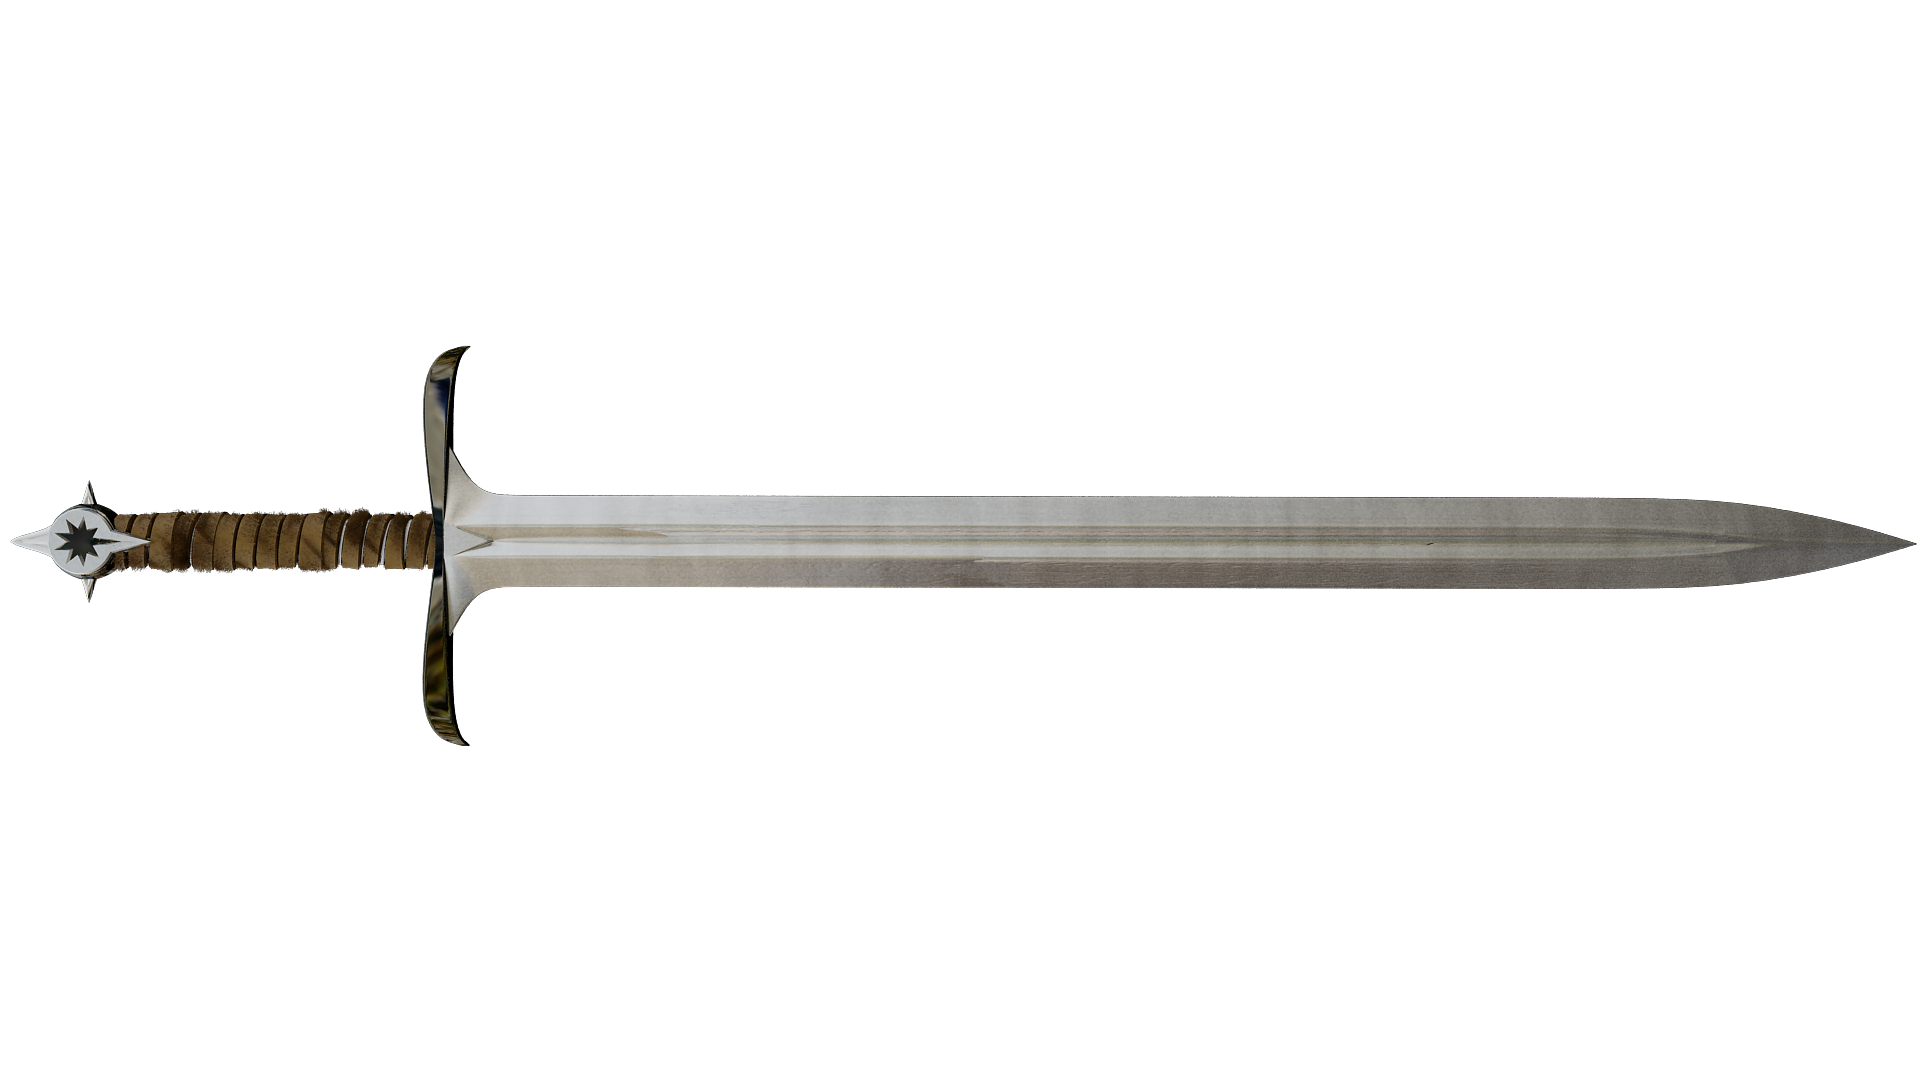 Ph'nglui Glouglou Sword-hd-png-sword-png-image-1920